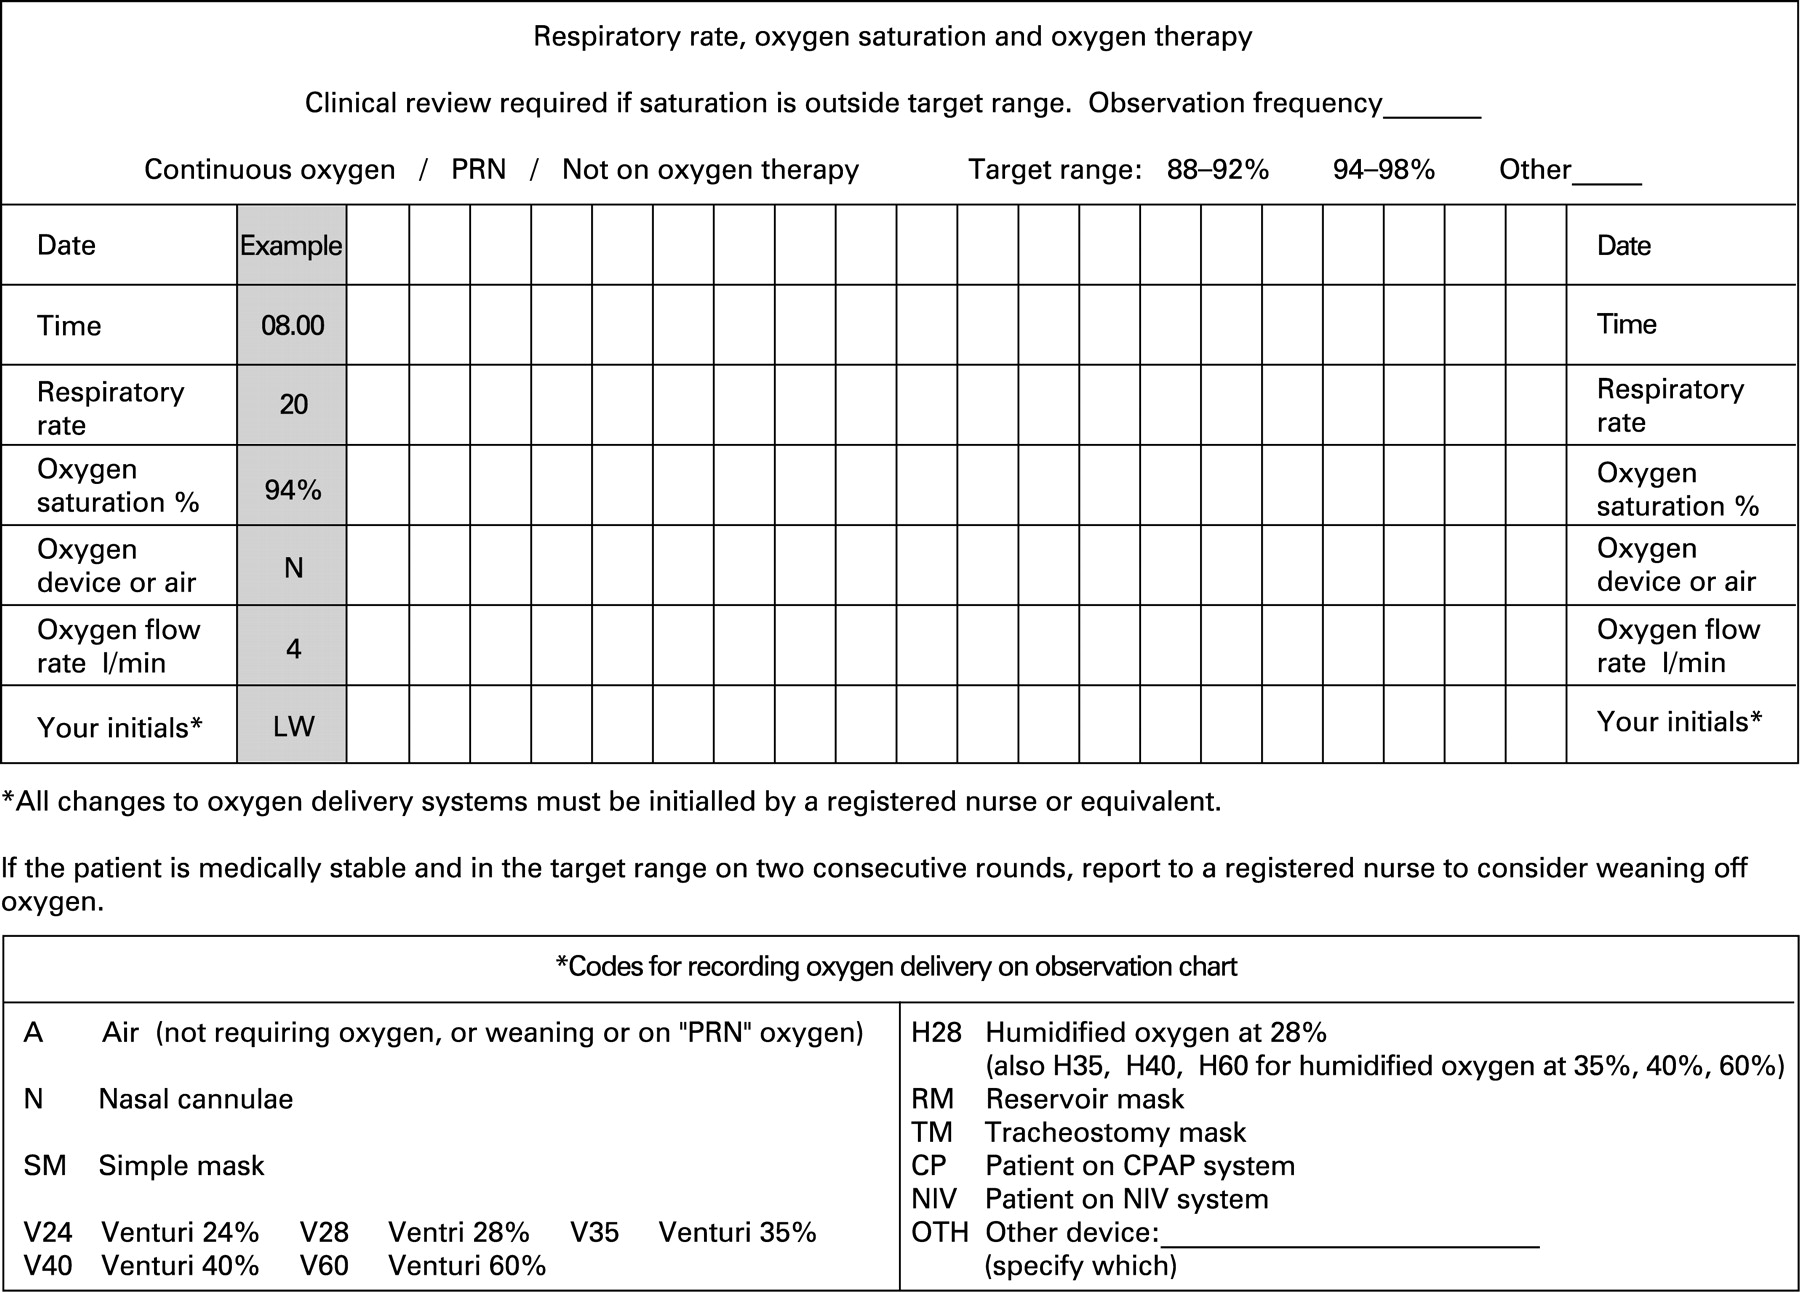 bts guideline for emergency oxygen use in adult patients thorax